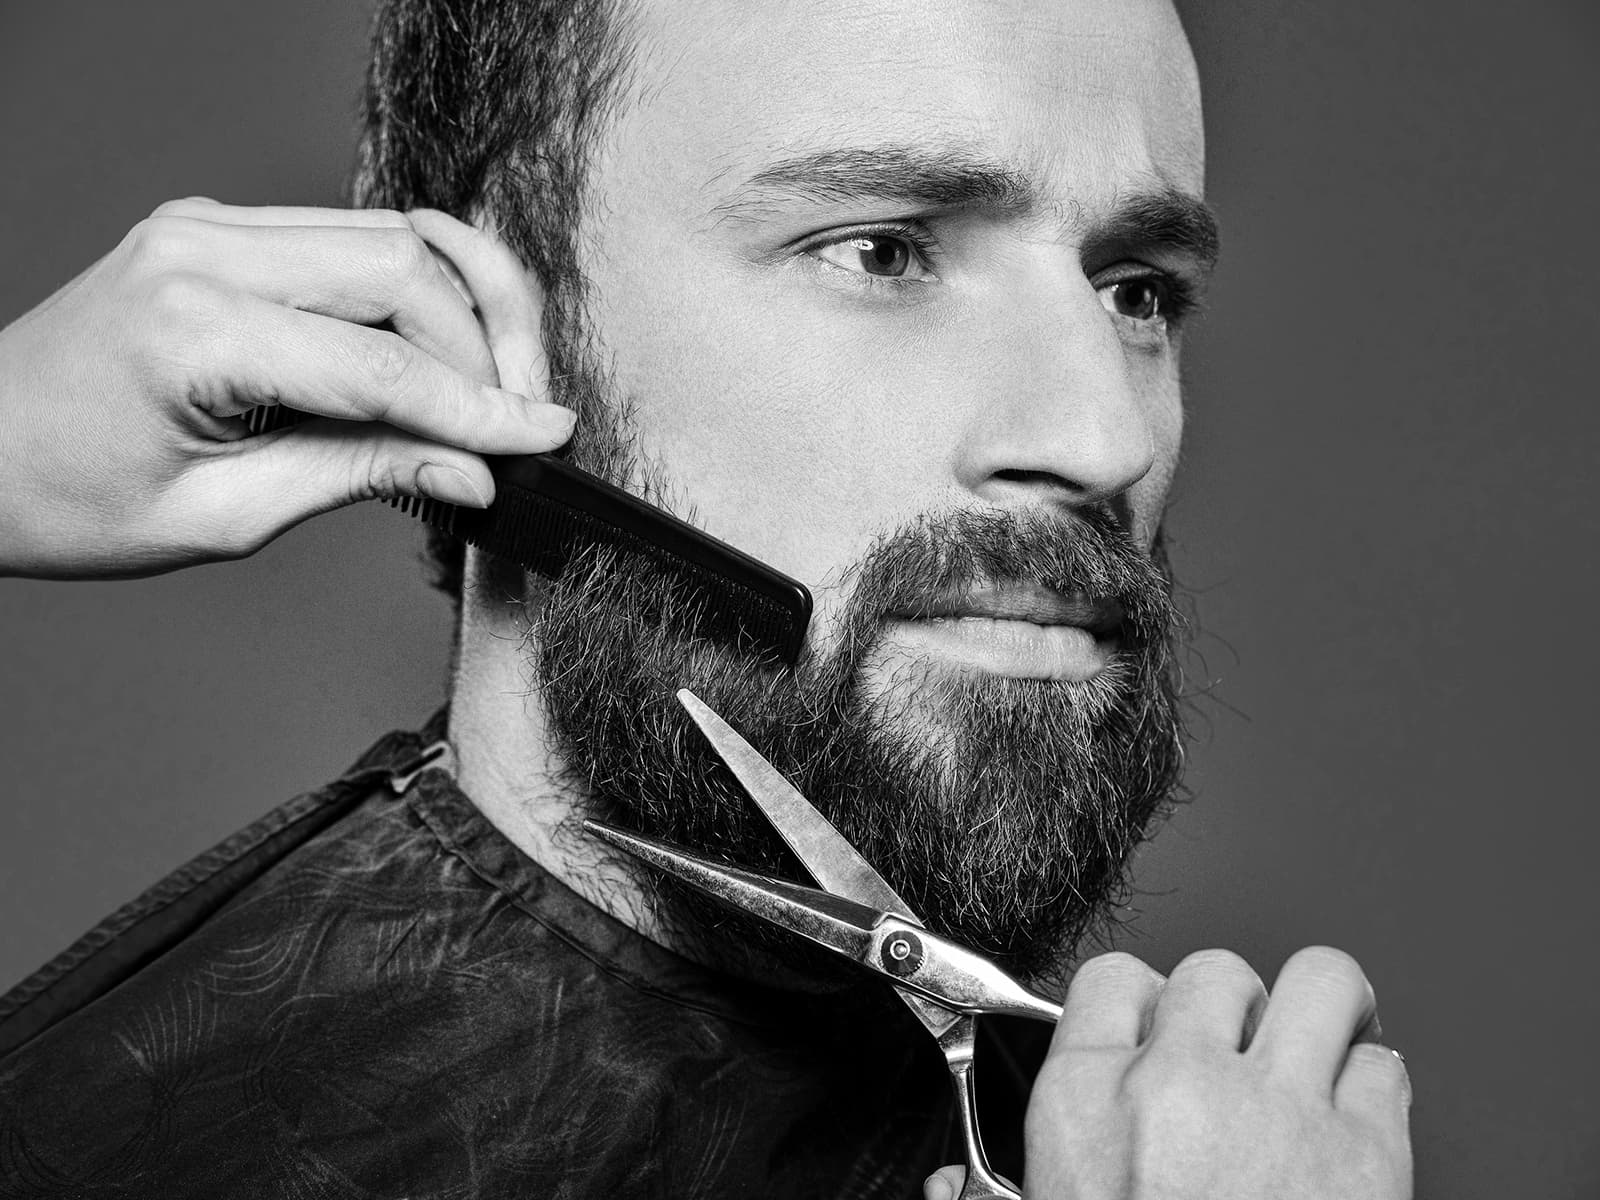 beard shaving photo - 1